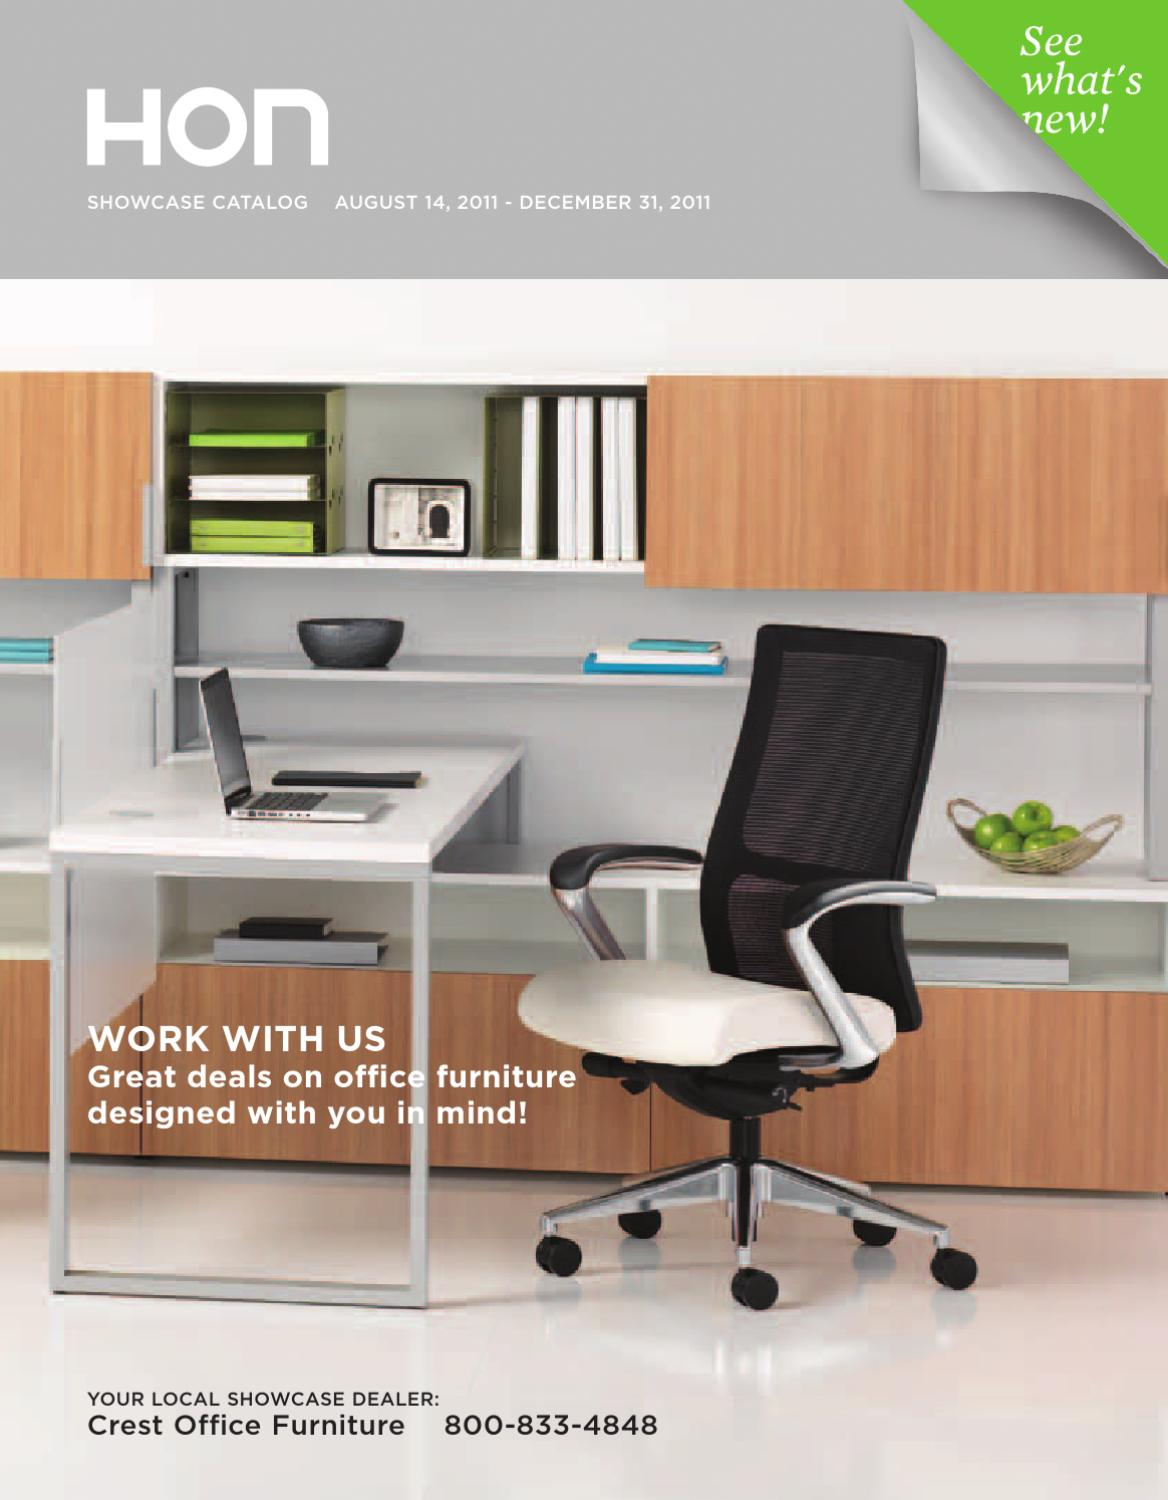 HON OFFICE FURNITURE CATALOG 2012 By David Wolf